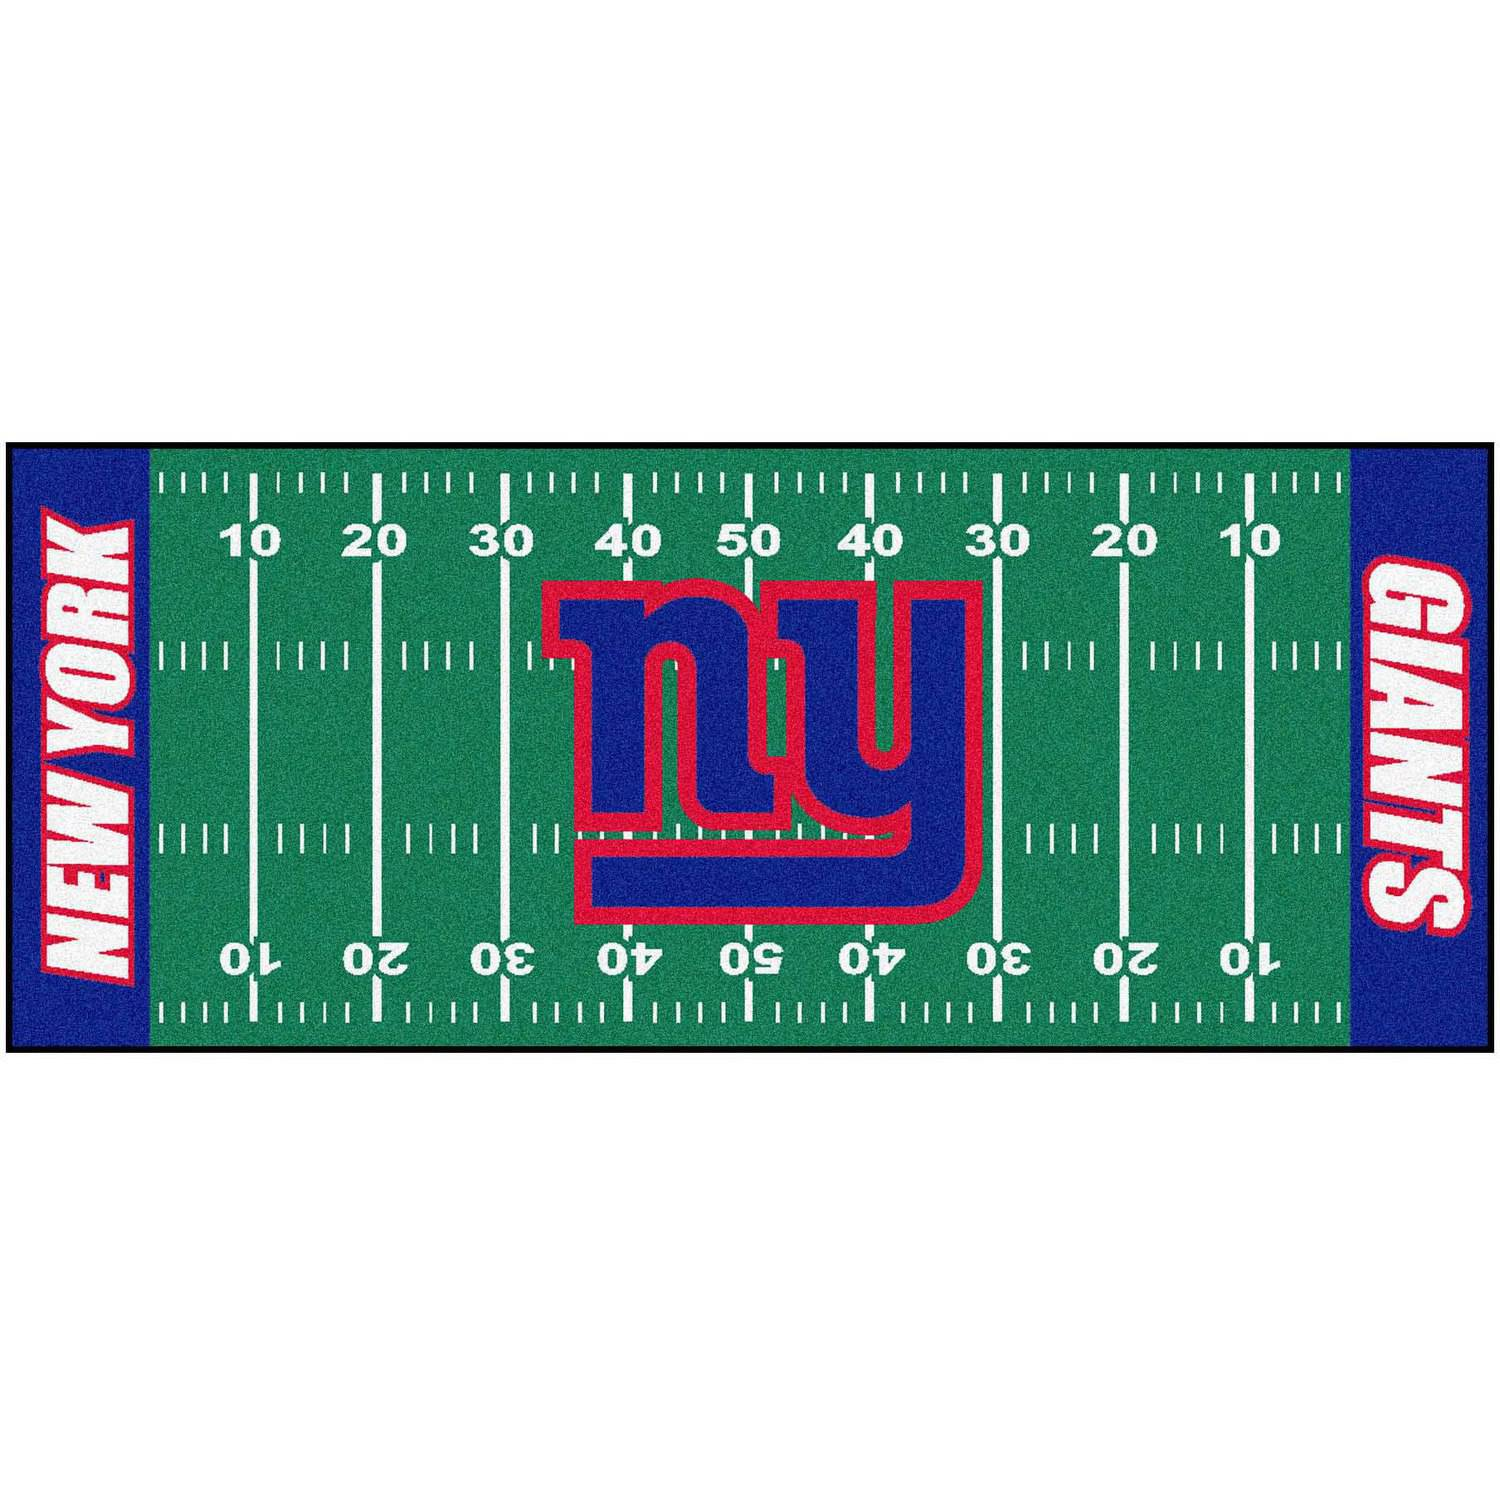 NFL New York Giants Football Field Runner